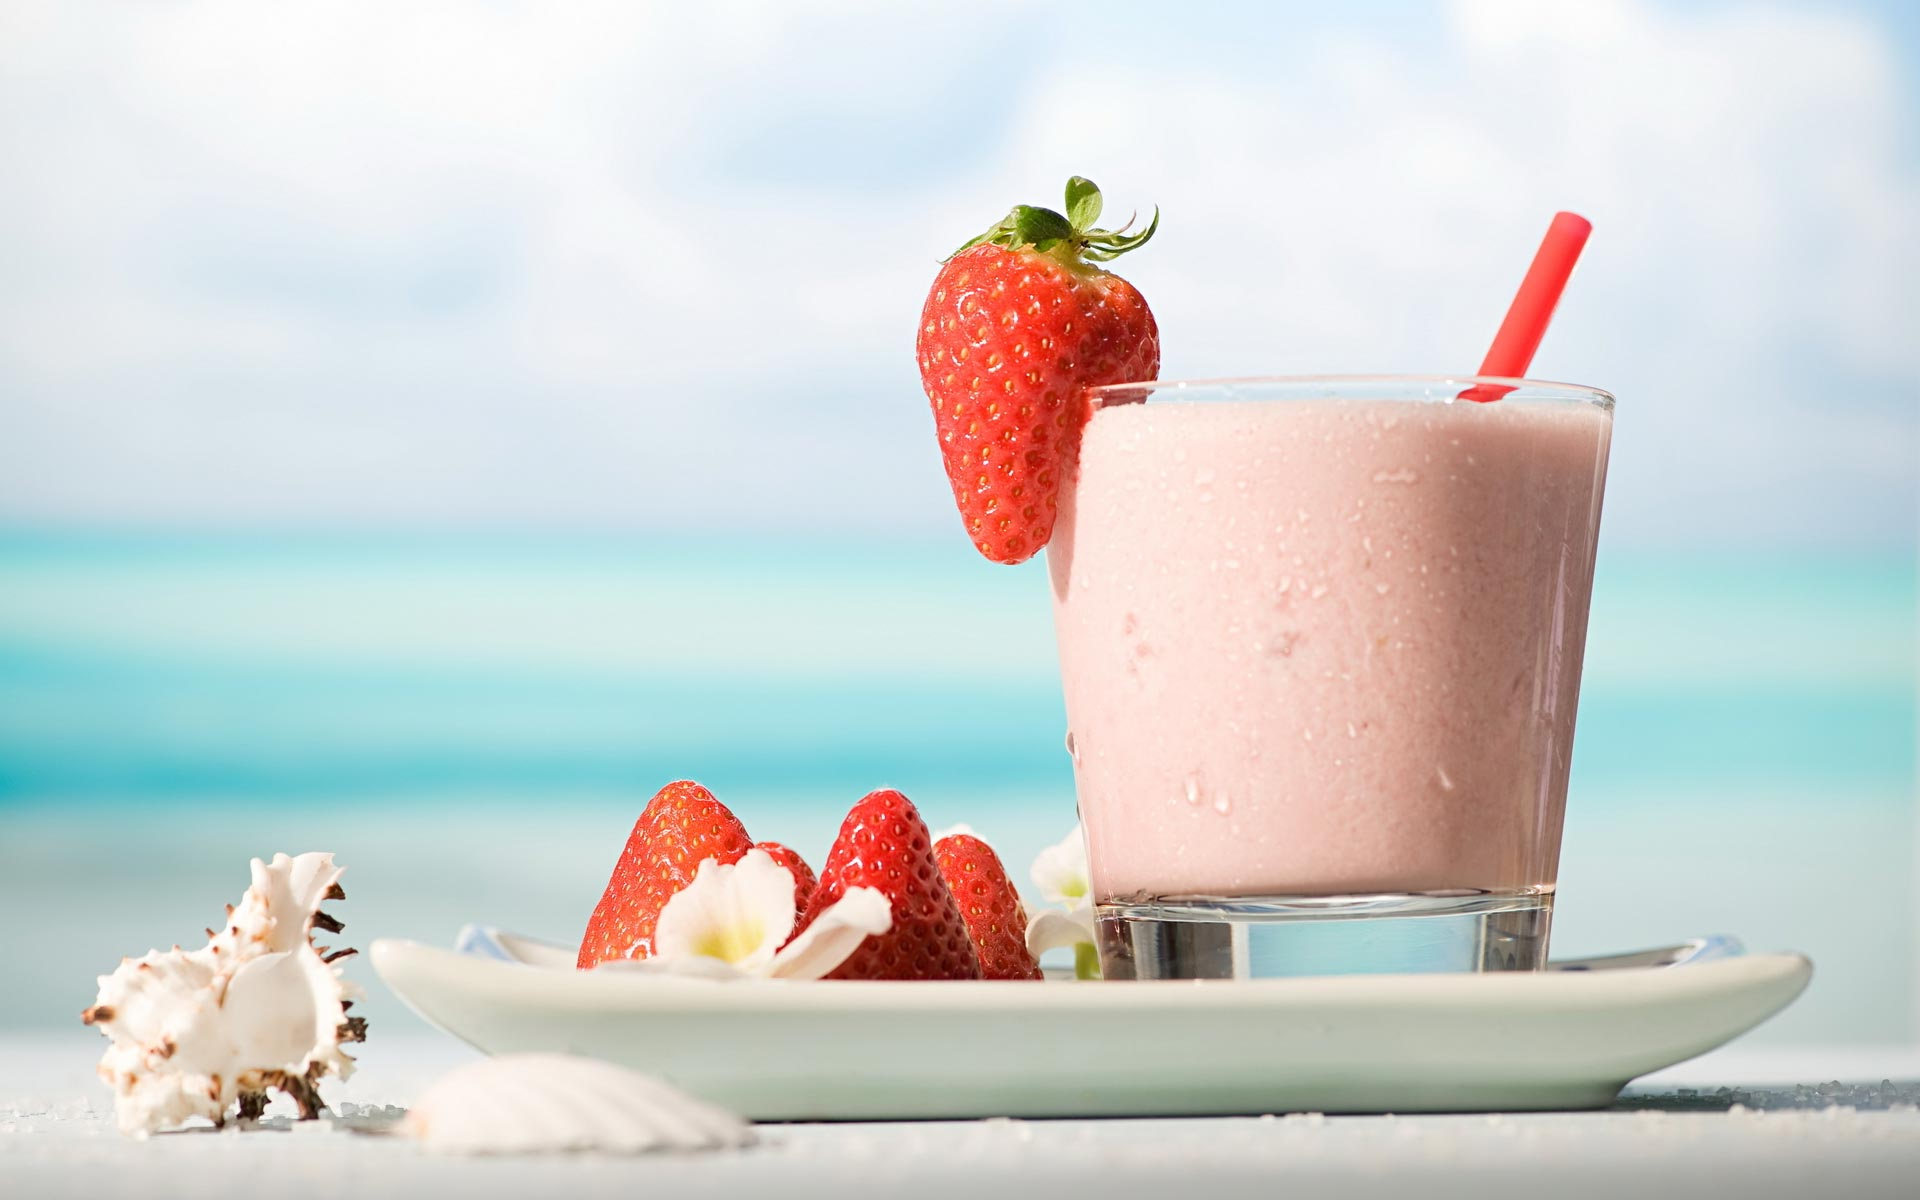 strawberry-yogurt-hd-widescreen---hd-free-wallpaper